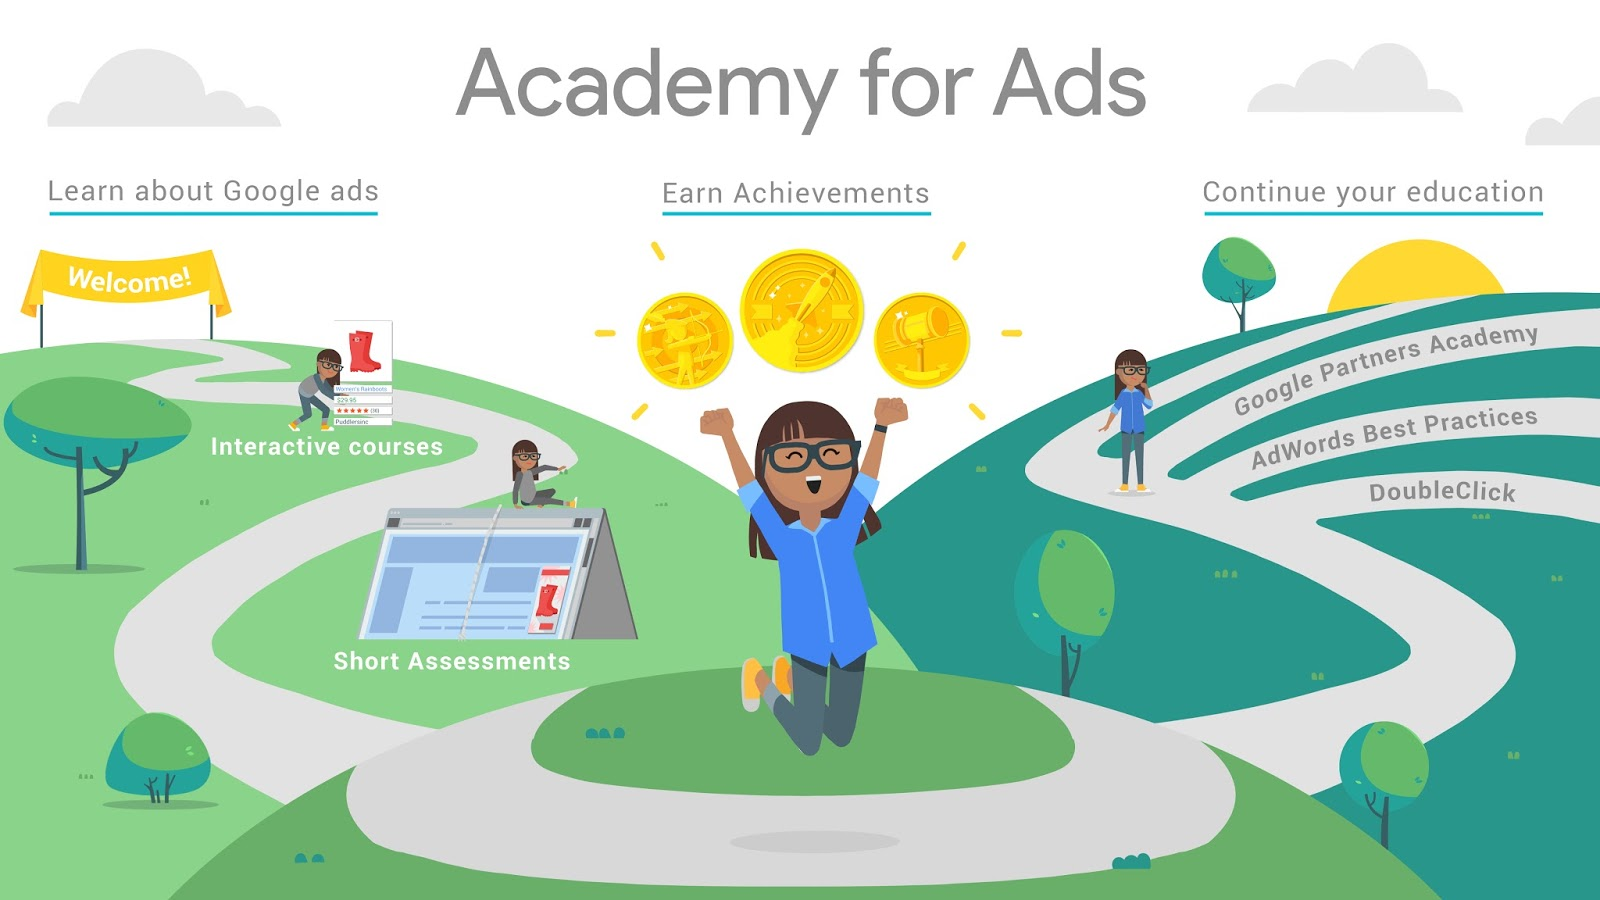 Google Academy for Ads -  - Learn Google Ads, Search and Displat Ads, Online Marketing for Free